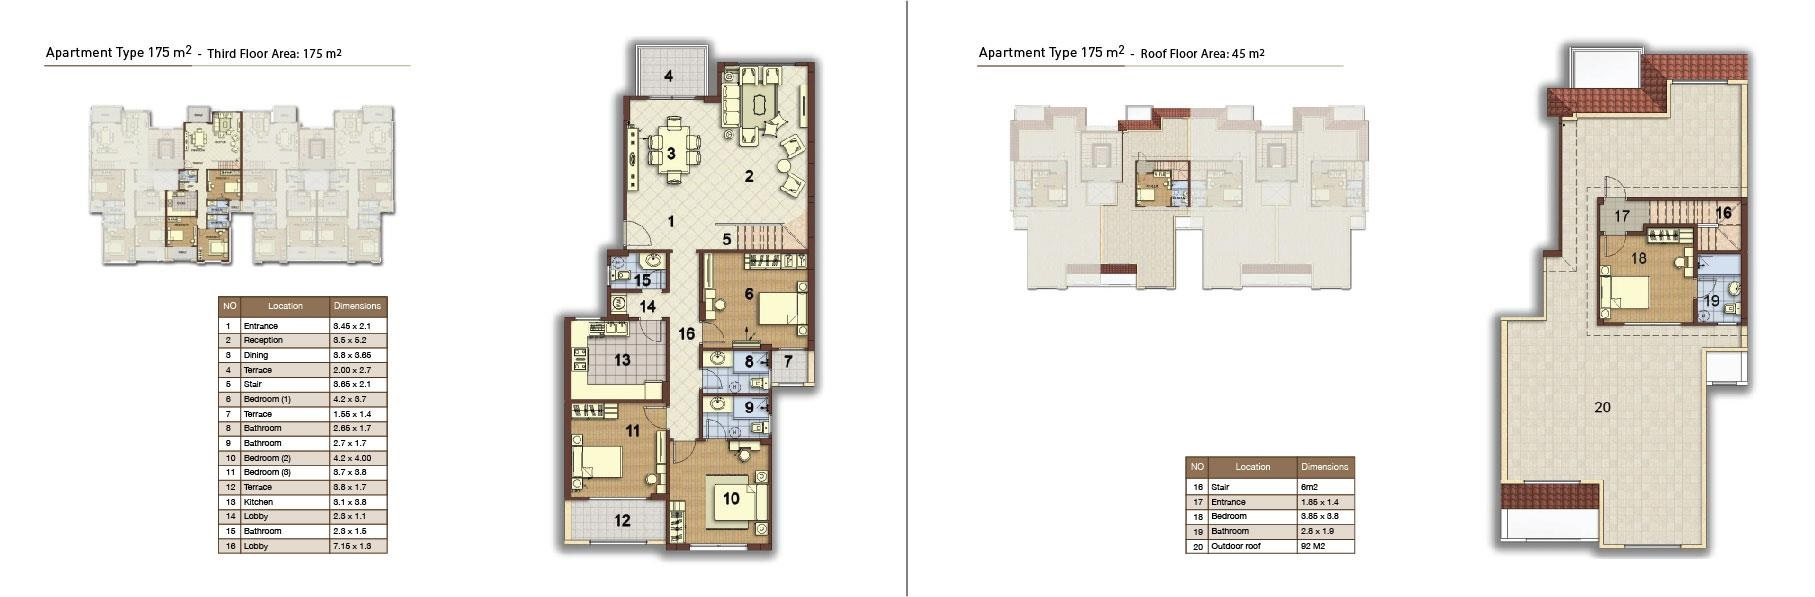 apartment type 175 middle 02